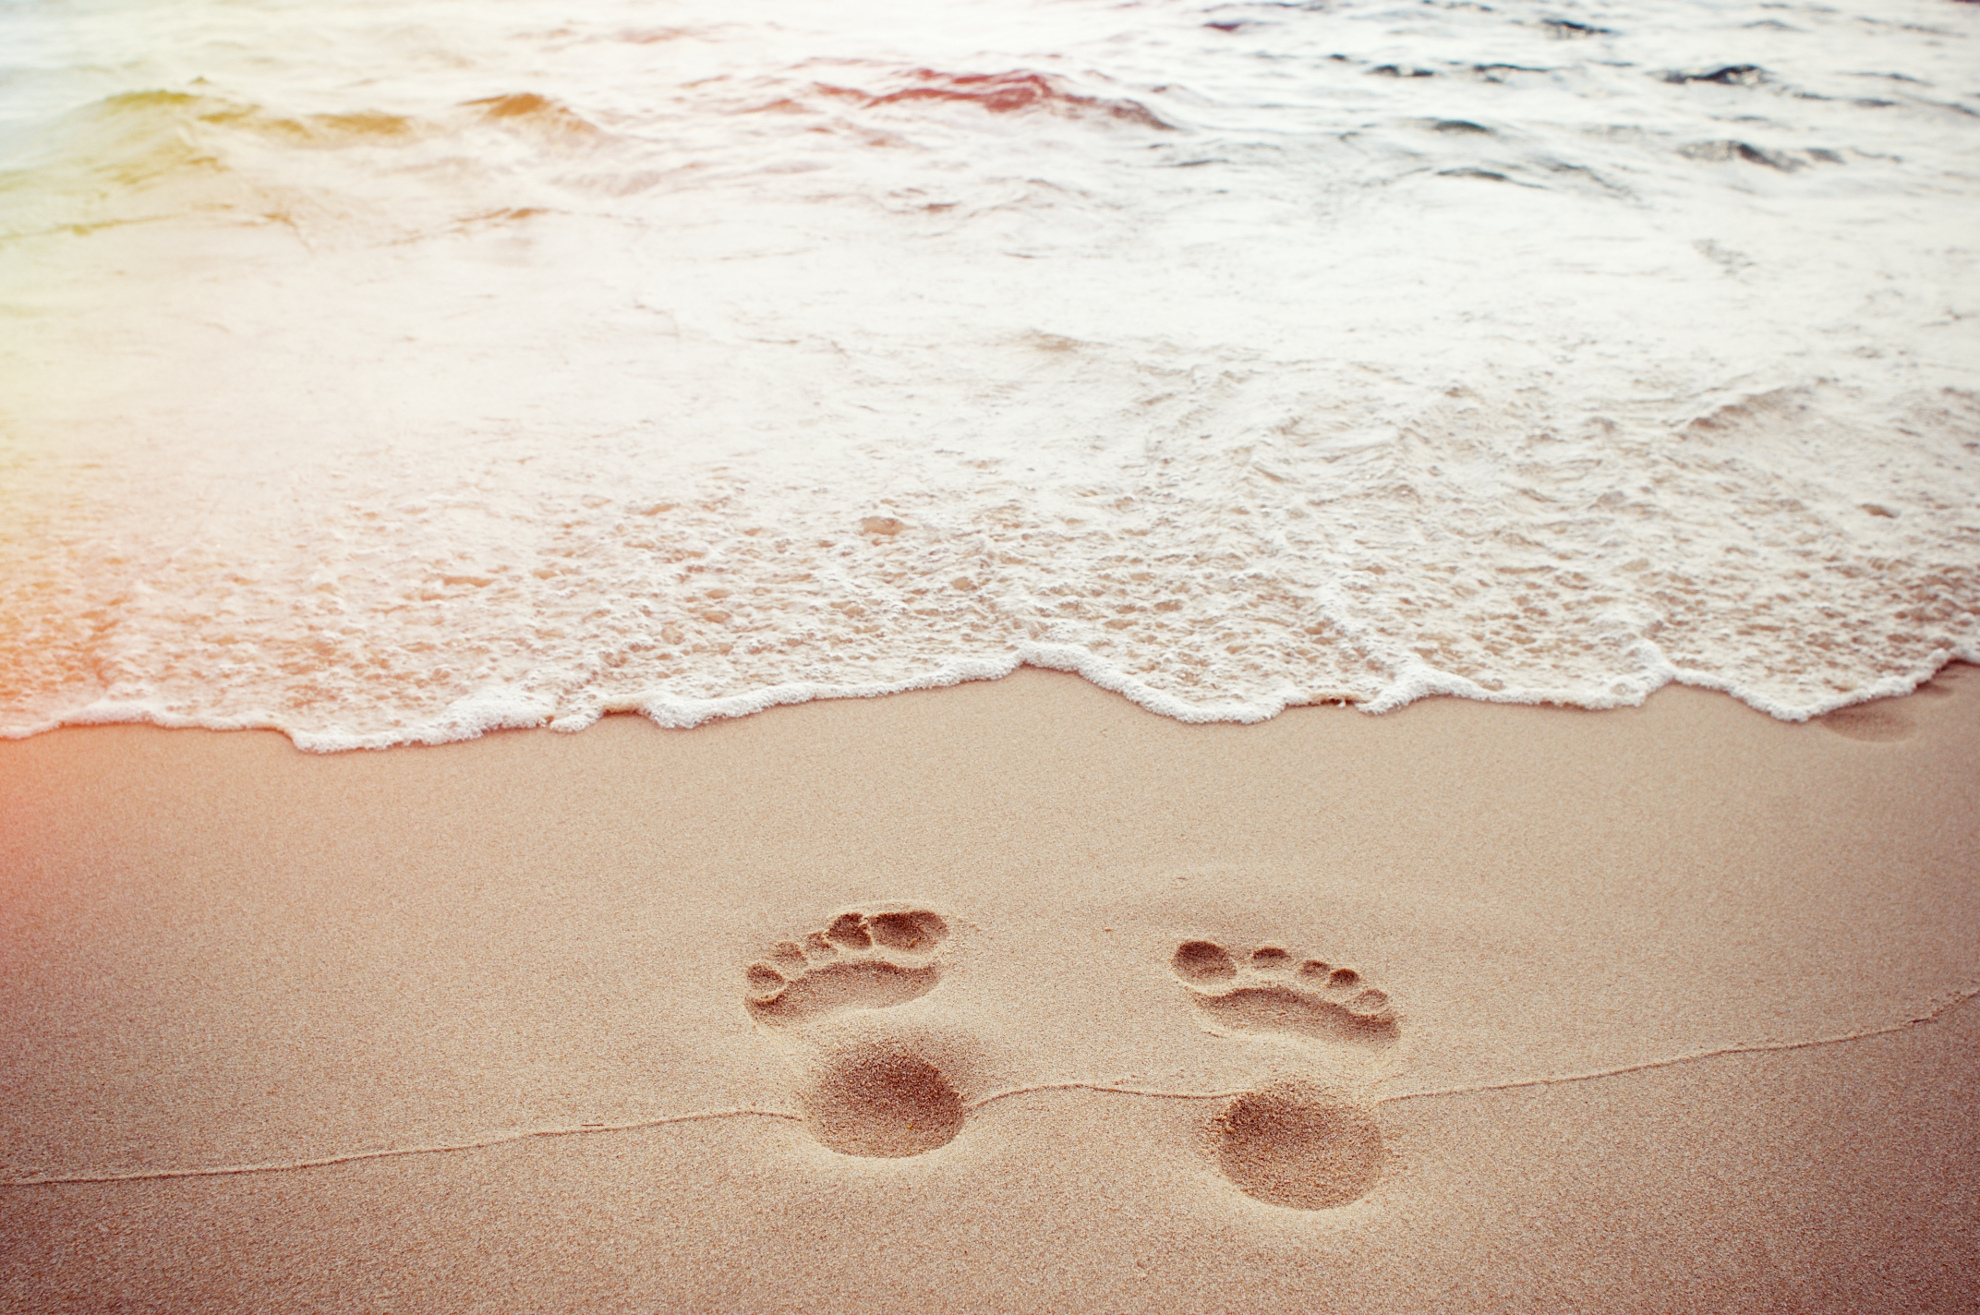 footprints in sand water